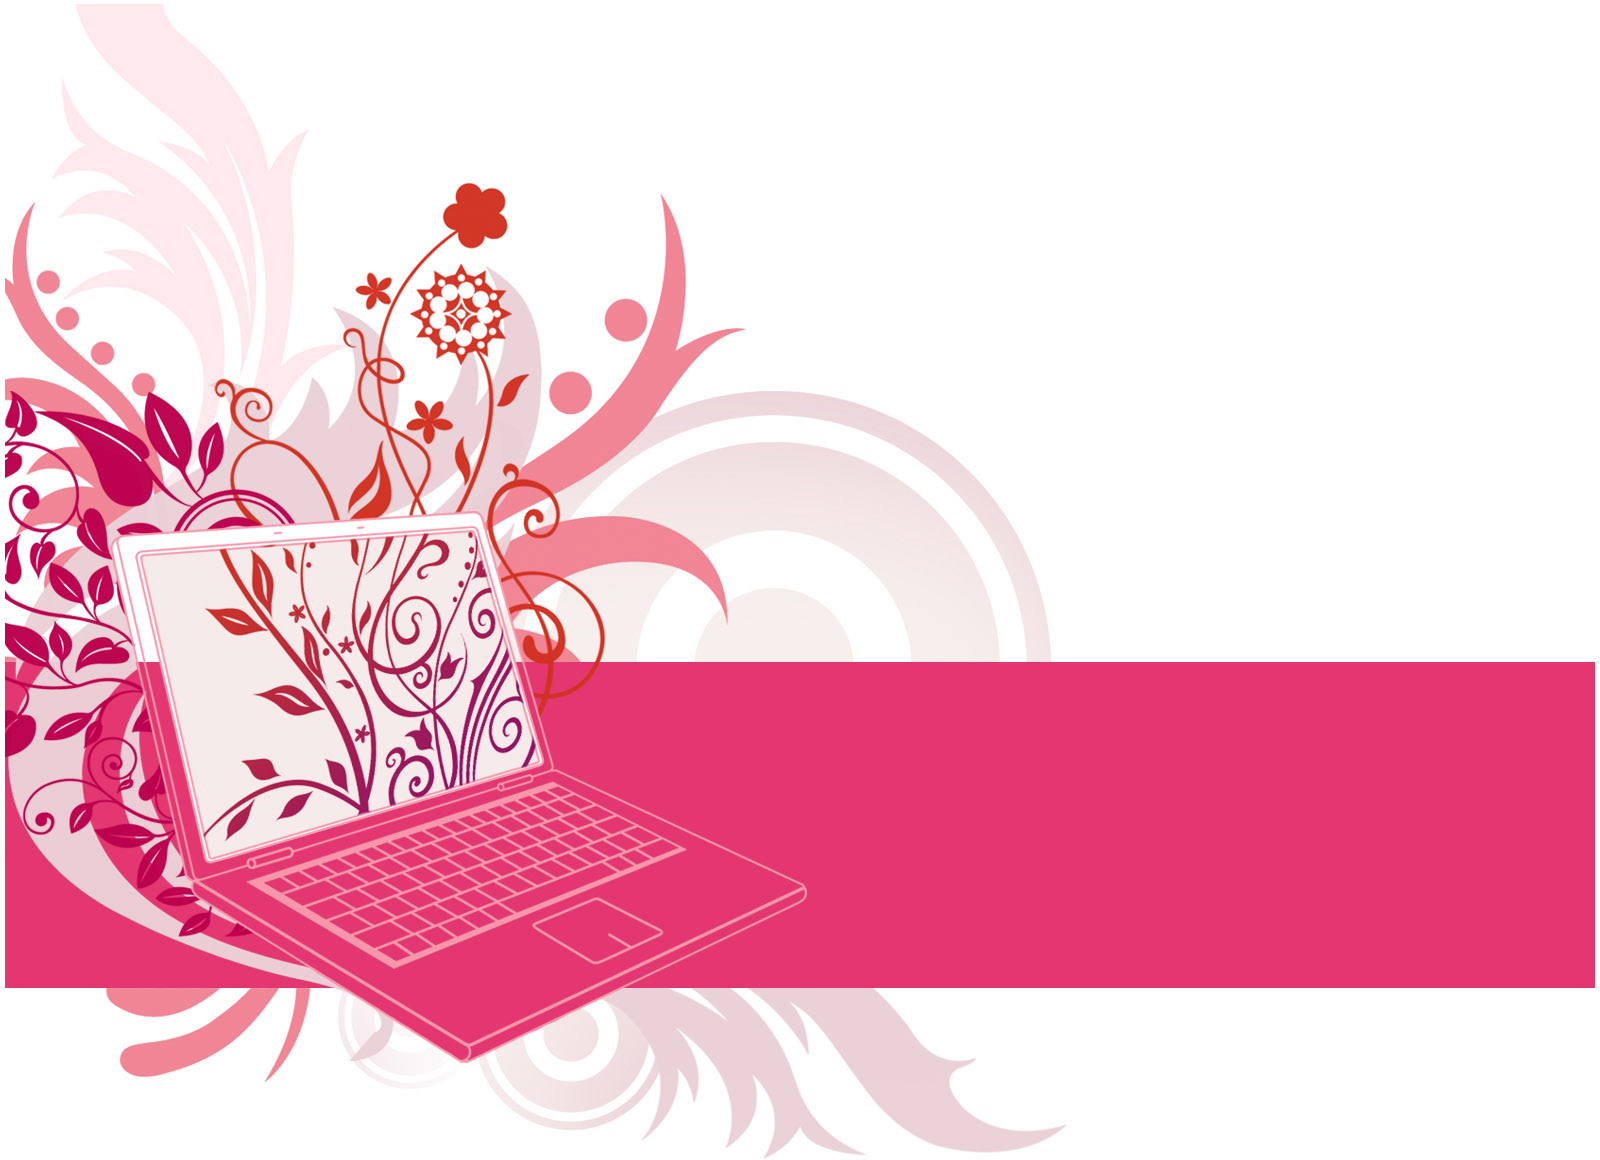 Pink Laptop Animated Backgrounds For Powerpoint Templates